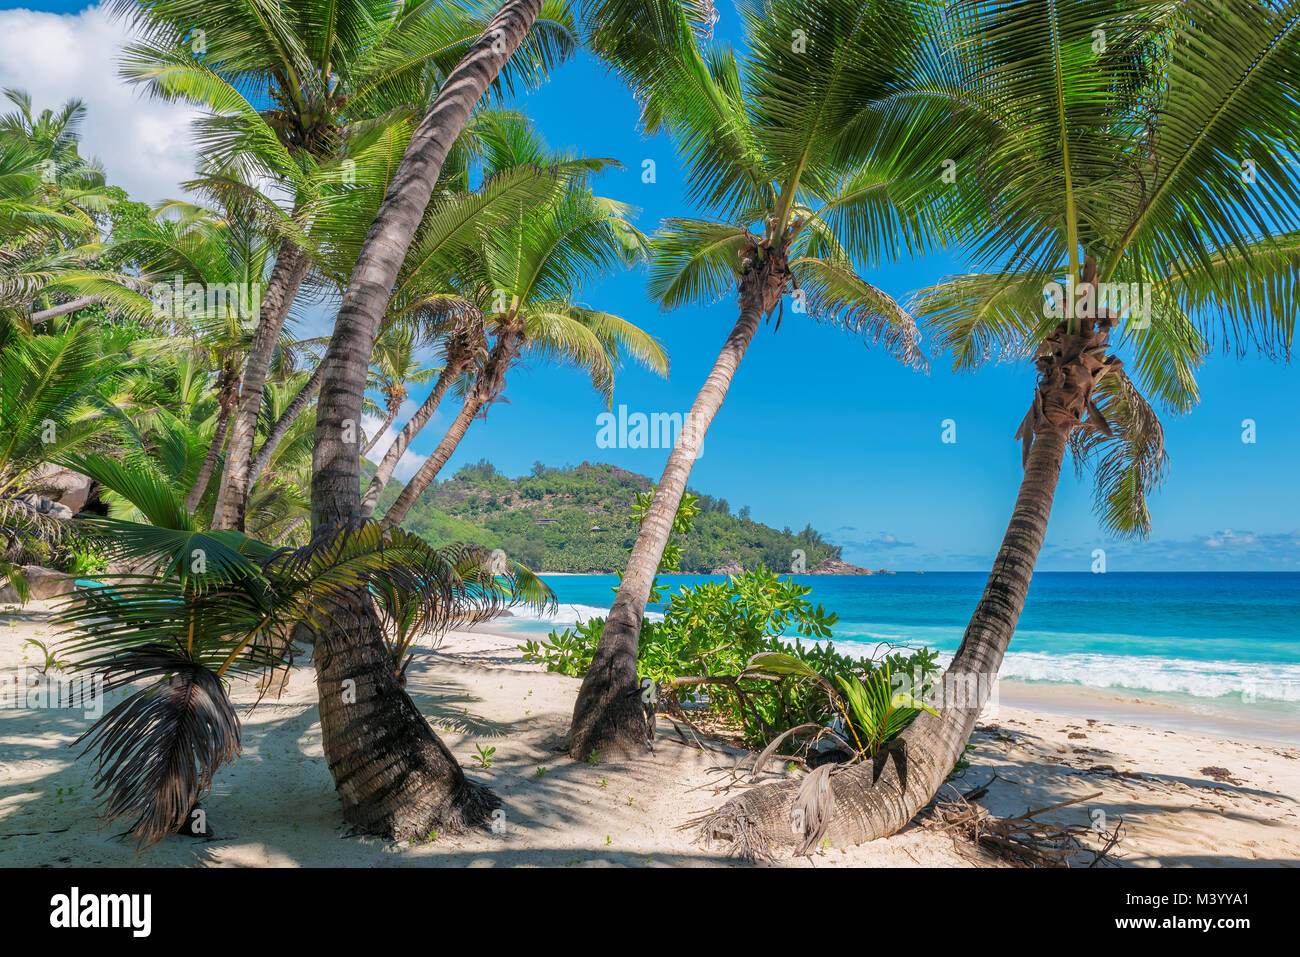 Coconut Palm trees on the sandy beach - Stock Image